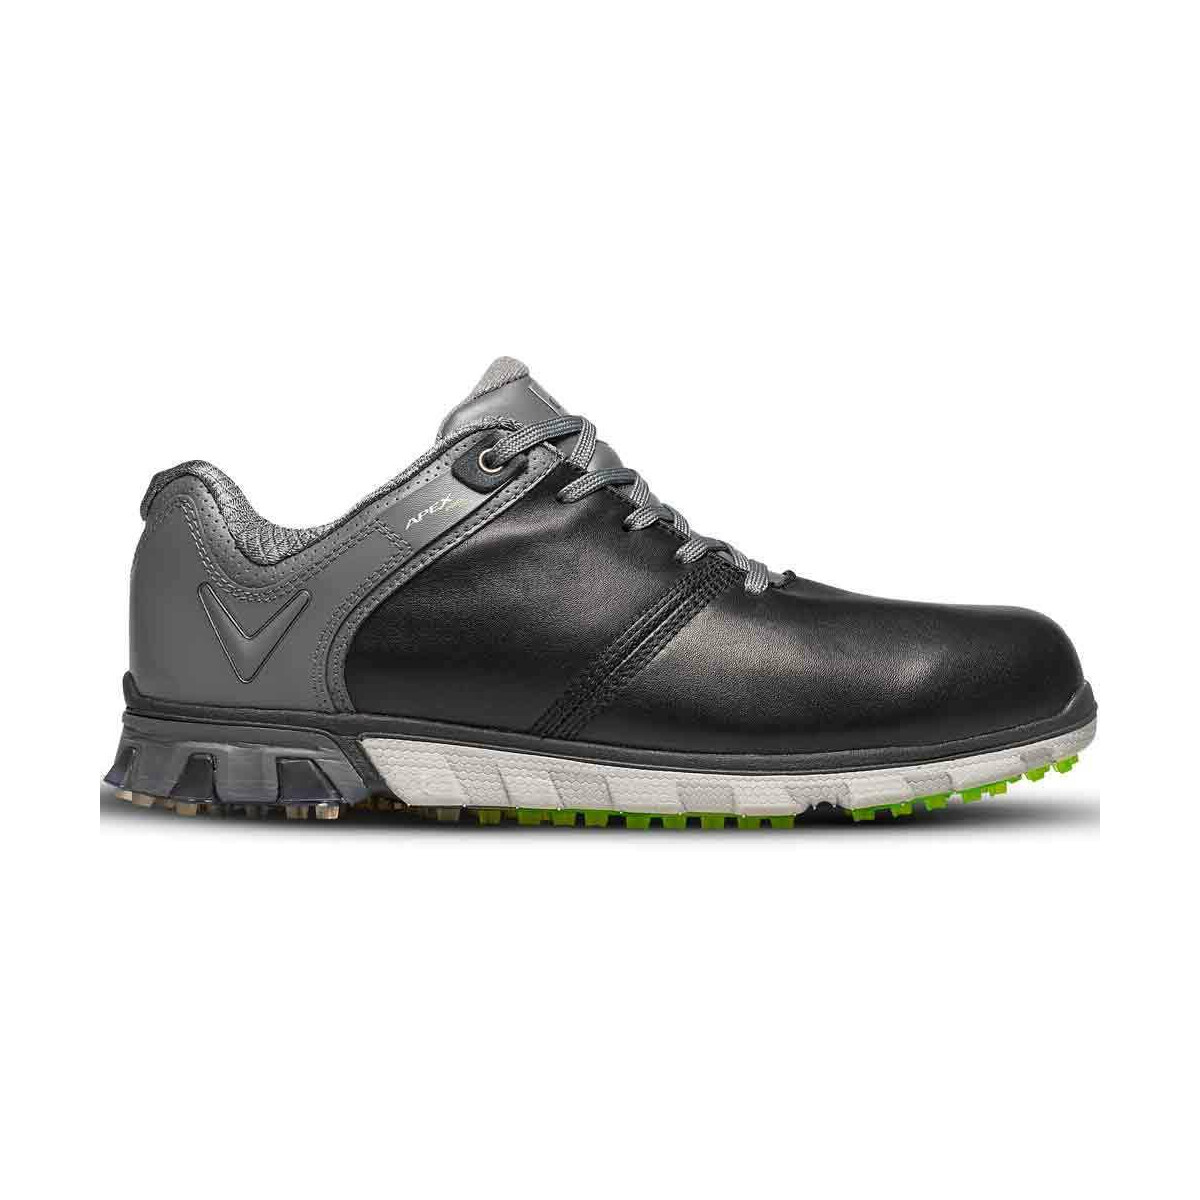 Callayway Apex Pro M570 Golfschuhe Herren Black/Grey 47